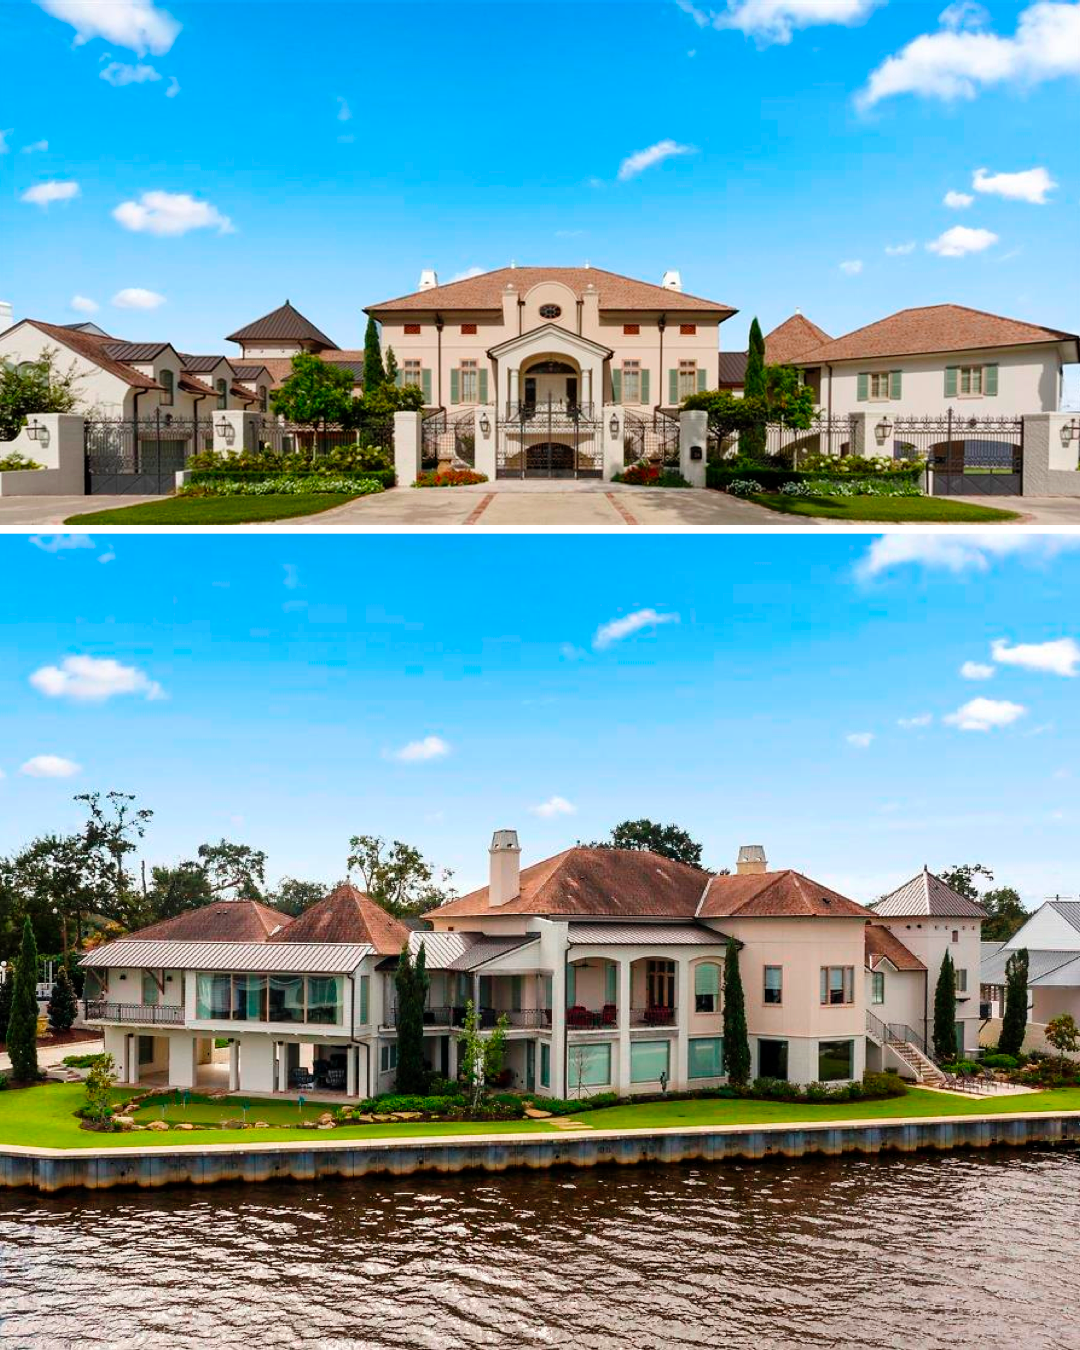 Panoramic Views Of The Lake Are Created By This Three Story Design With Patios And Balconies Fr Mansions For Sale Unique Properties For Sale Luxury Real Estate